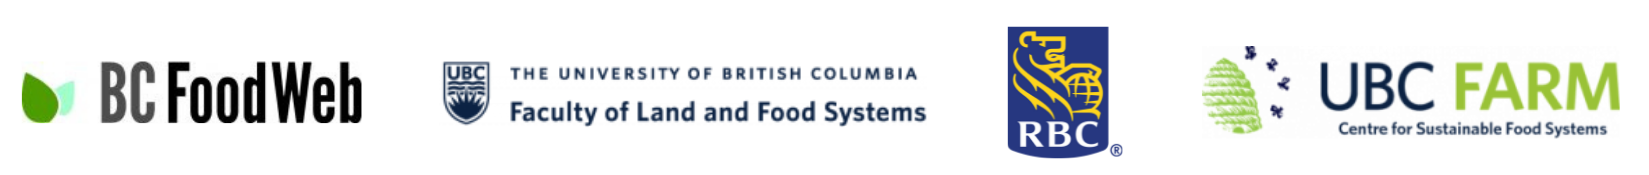 Sponsor logos for the BC Food Web, Faculty of Land and Food Systems, RBC Royal Bank, and the UBC Farm.